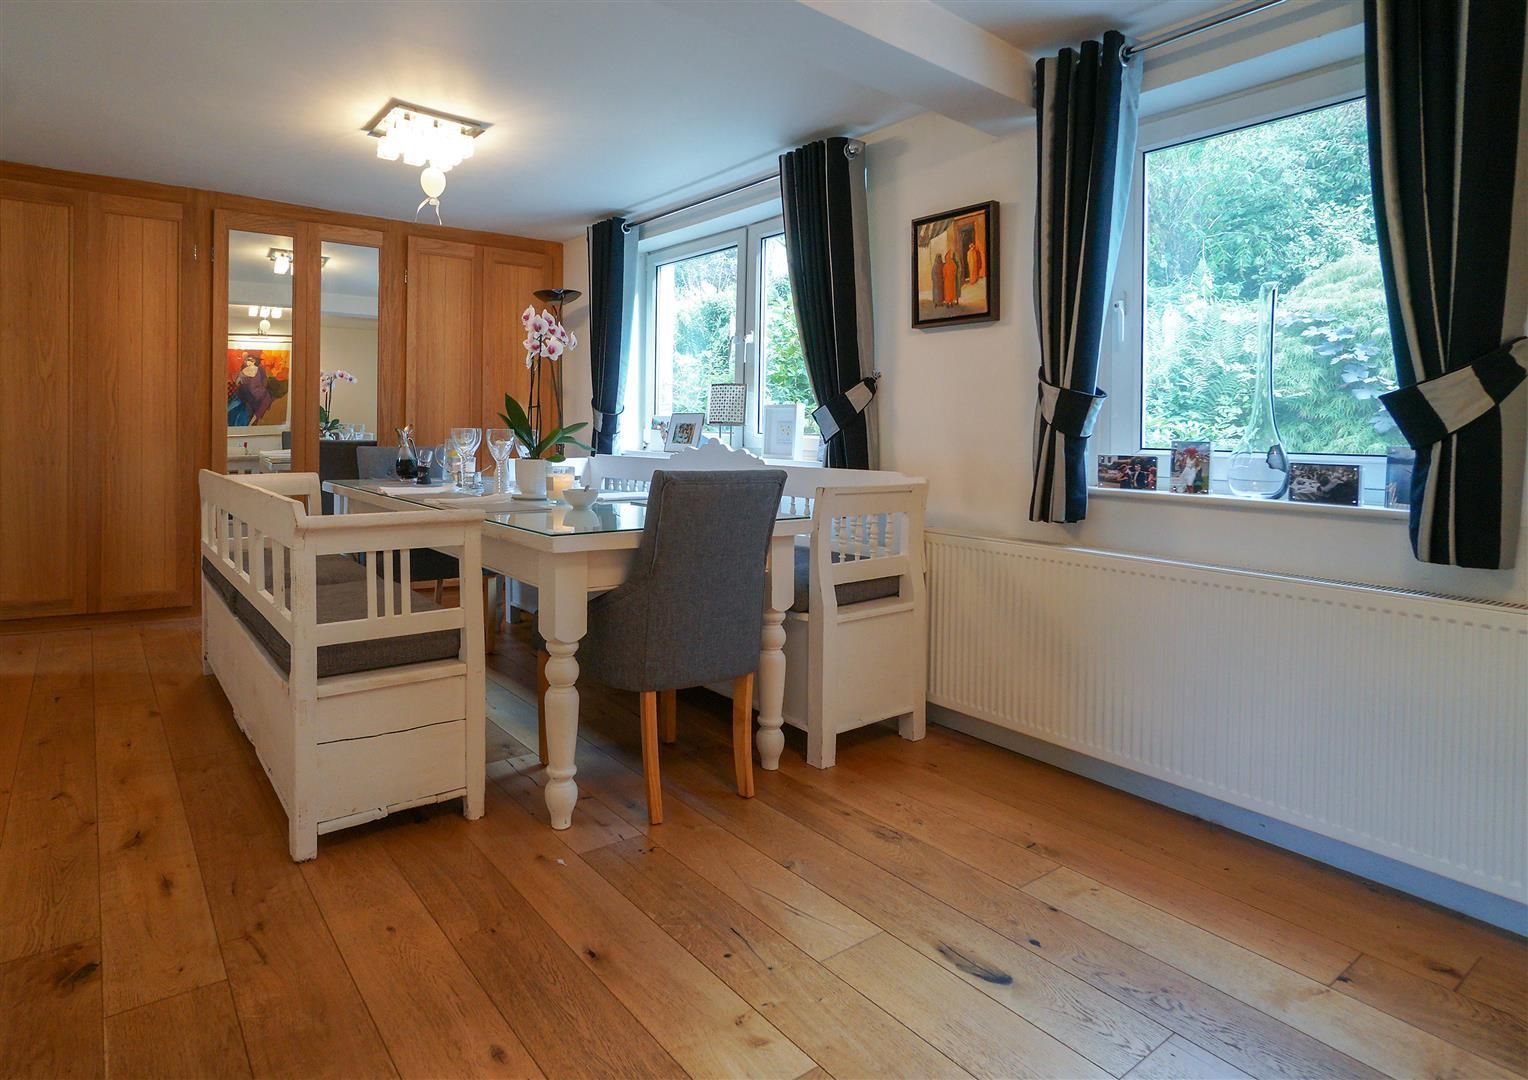 4 bed house for sale in Clent  - Property Image 8